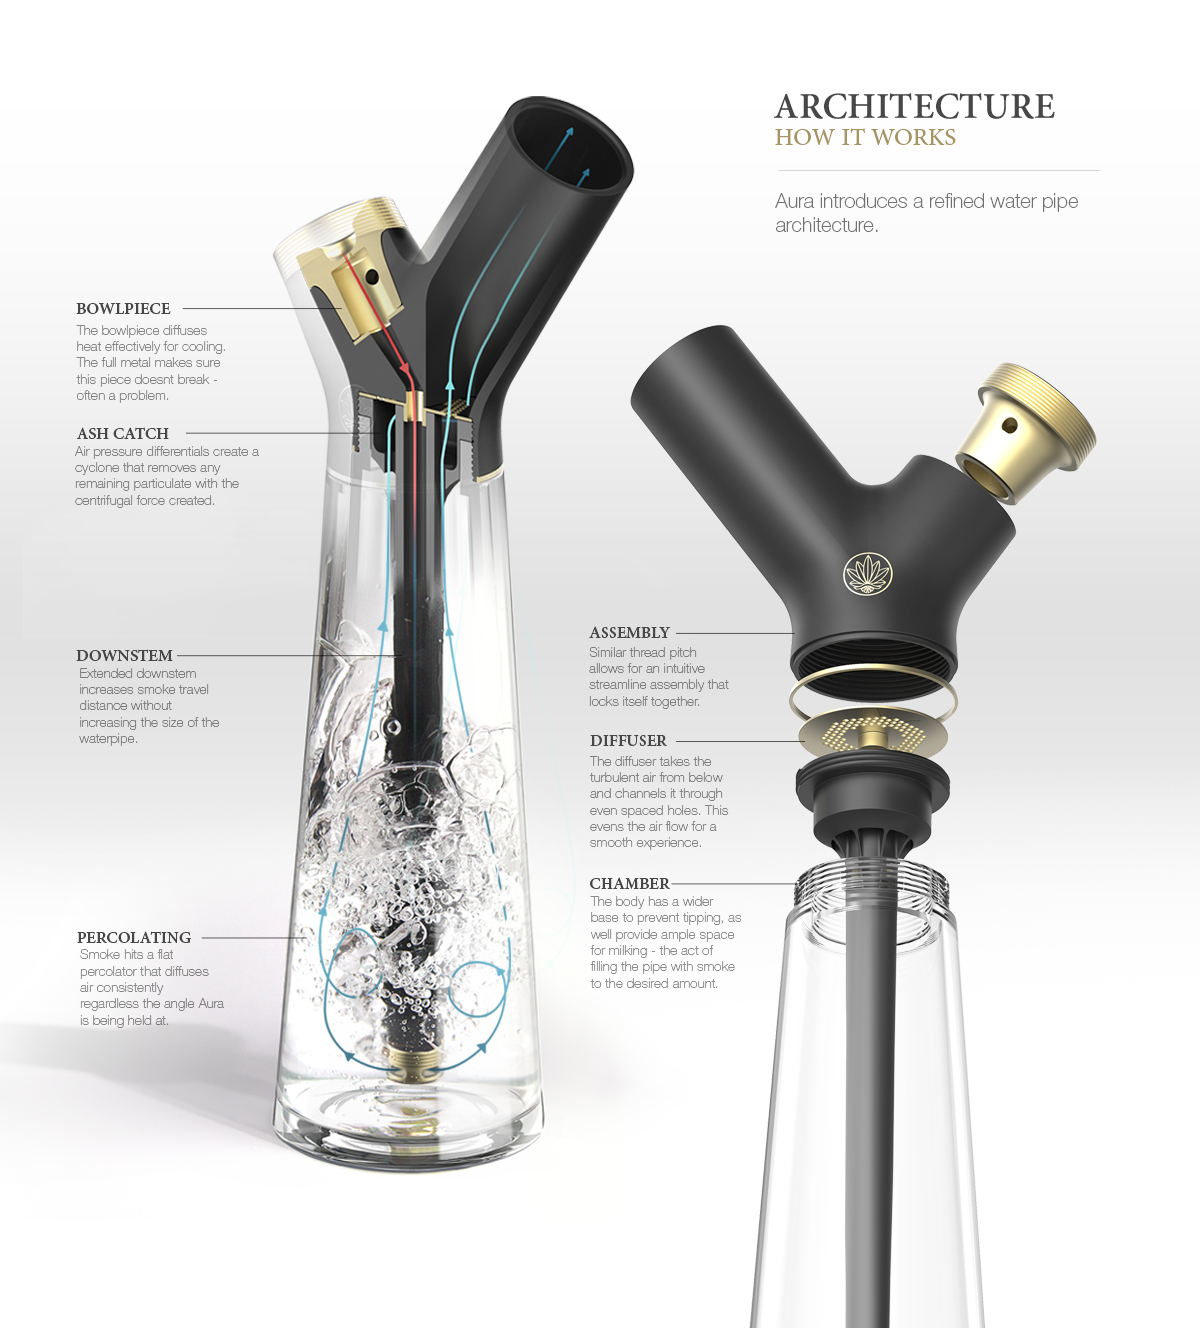 Aura Water Pipe : Modern Bong for Smoking Your Tobacco or Weed - Tuvie